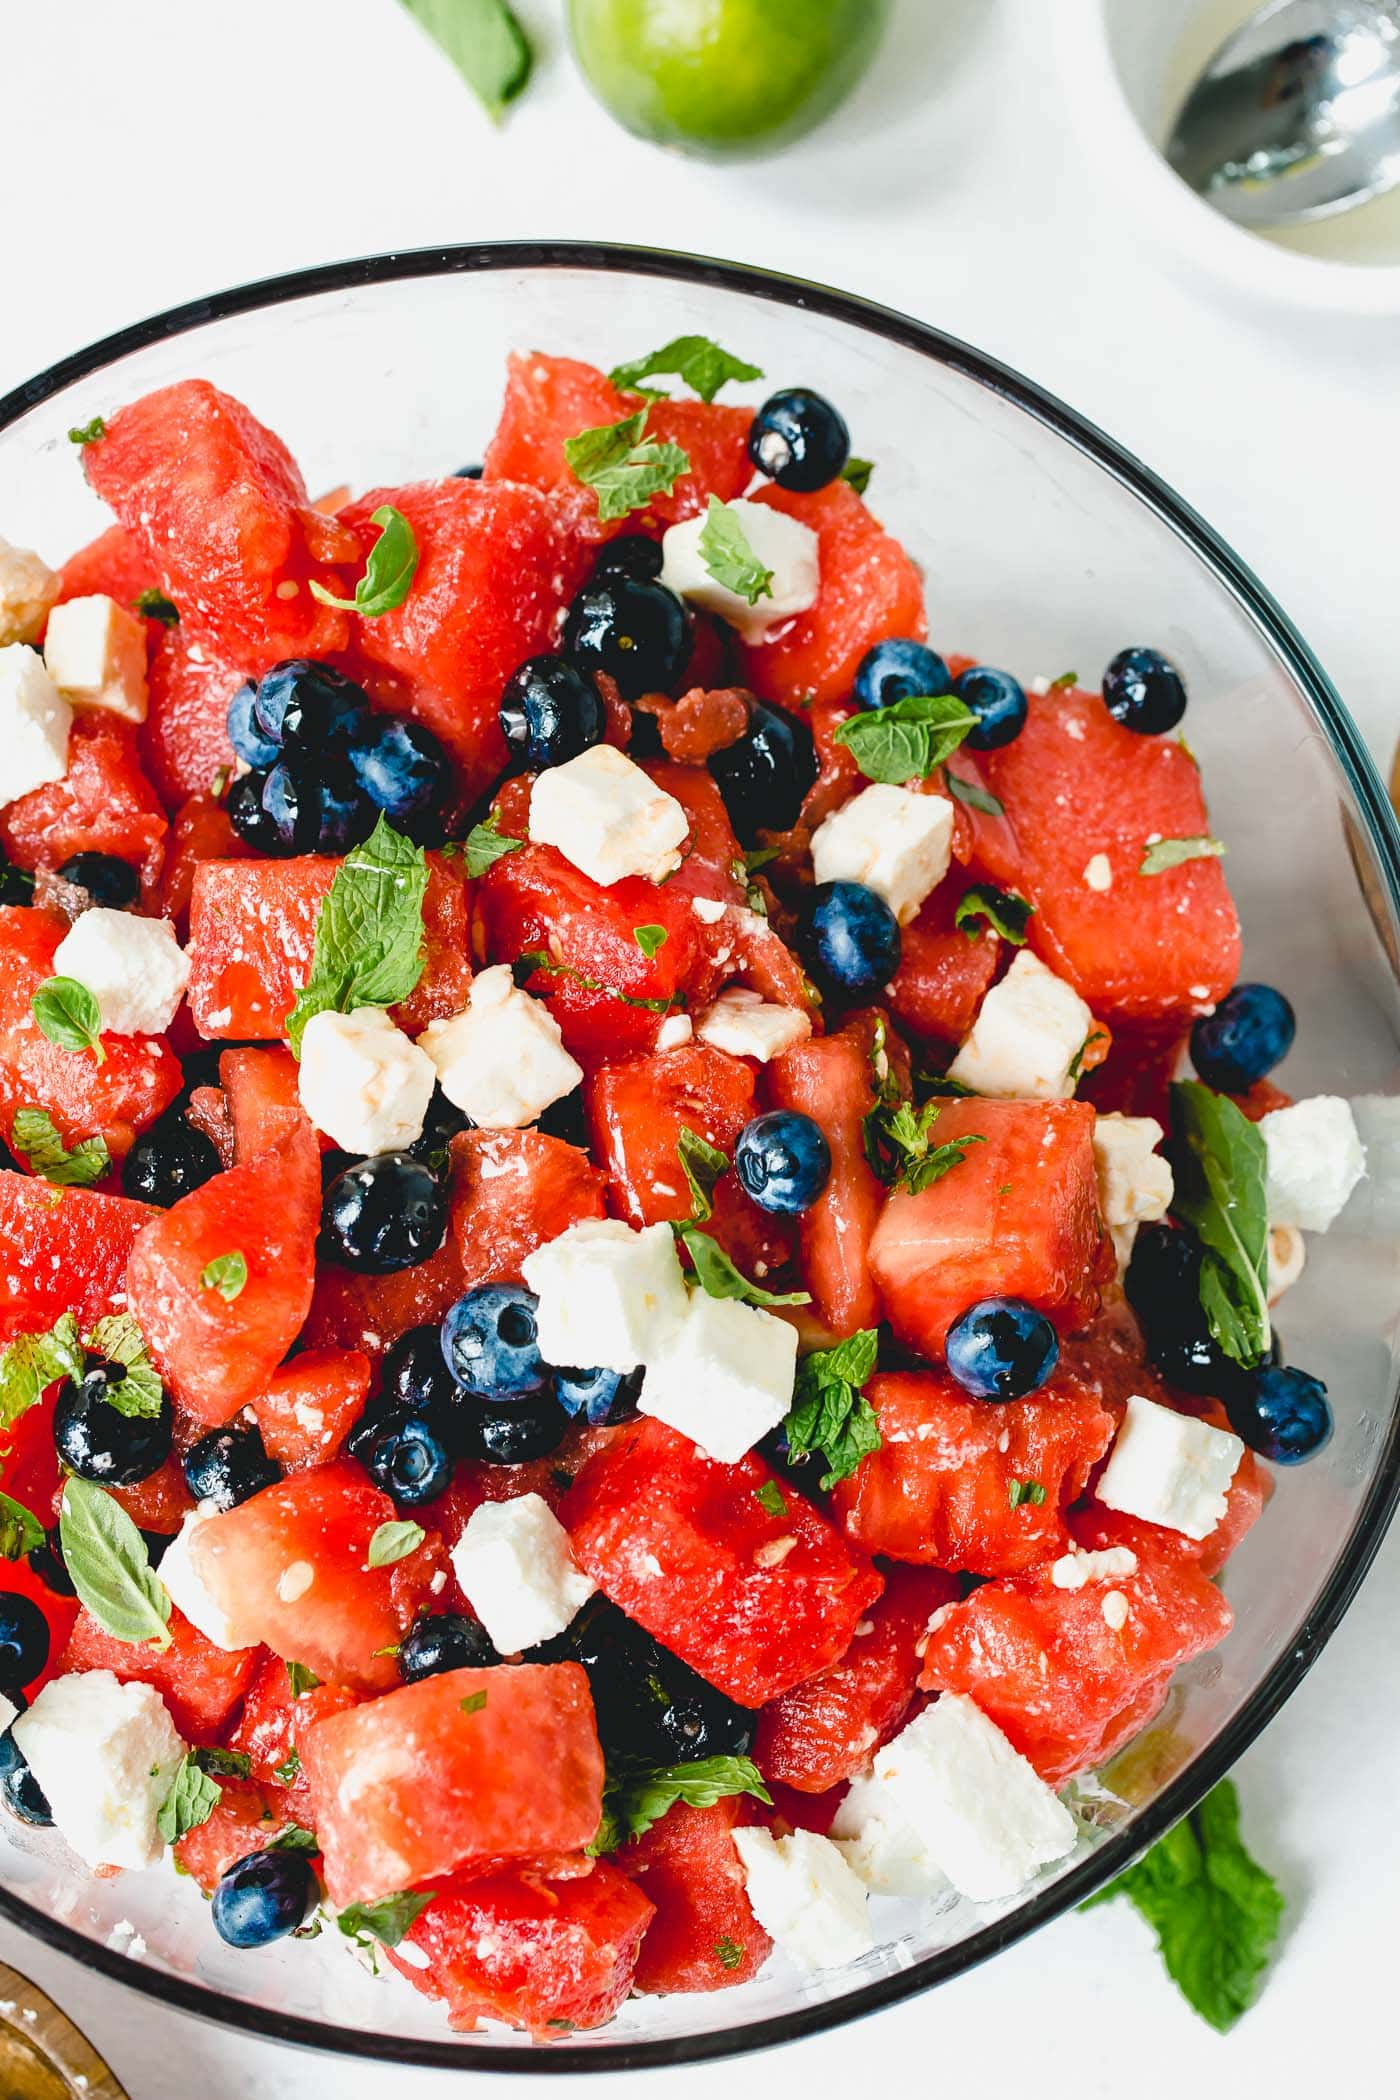 A plate of feta and watermelon salad.  Blueberries, watermelon pieces, and feta cheese cubes mixed with basil and mint leaves.